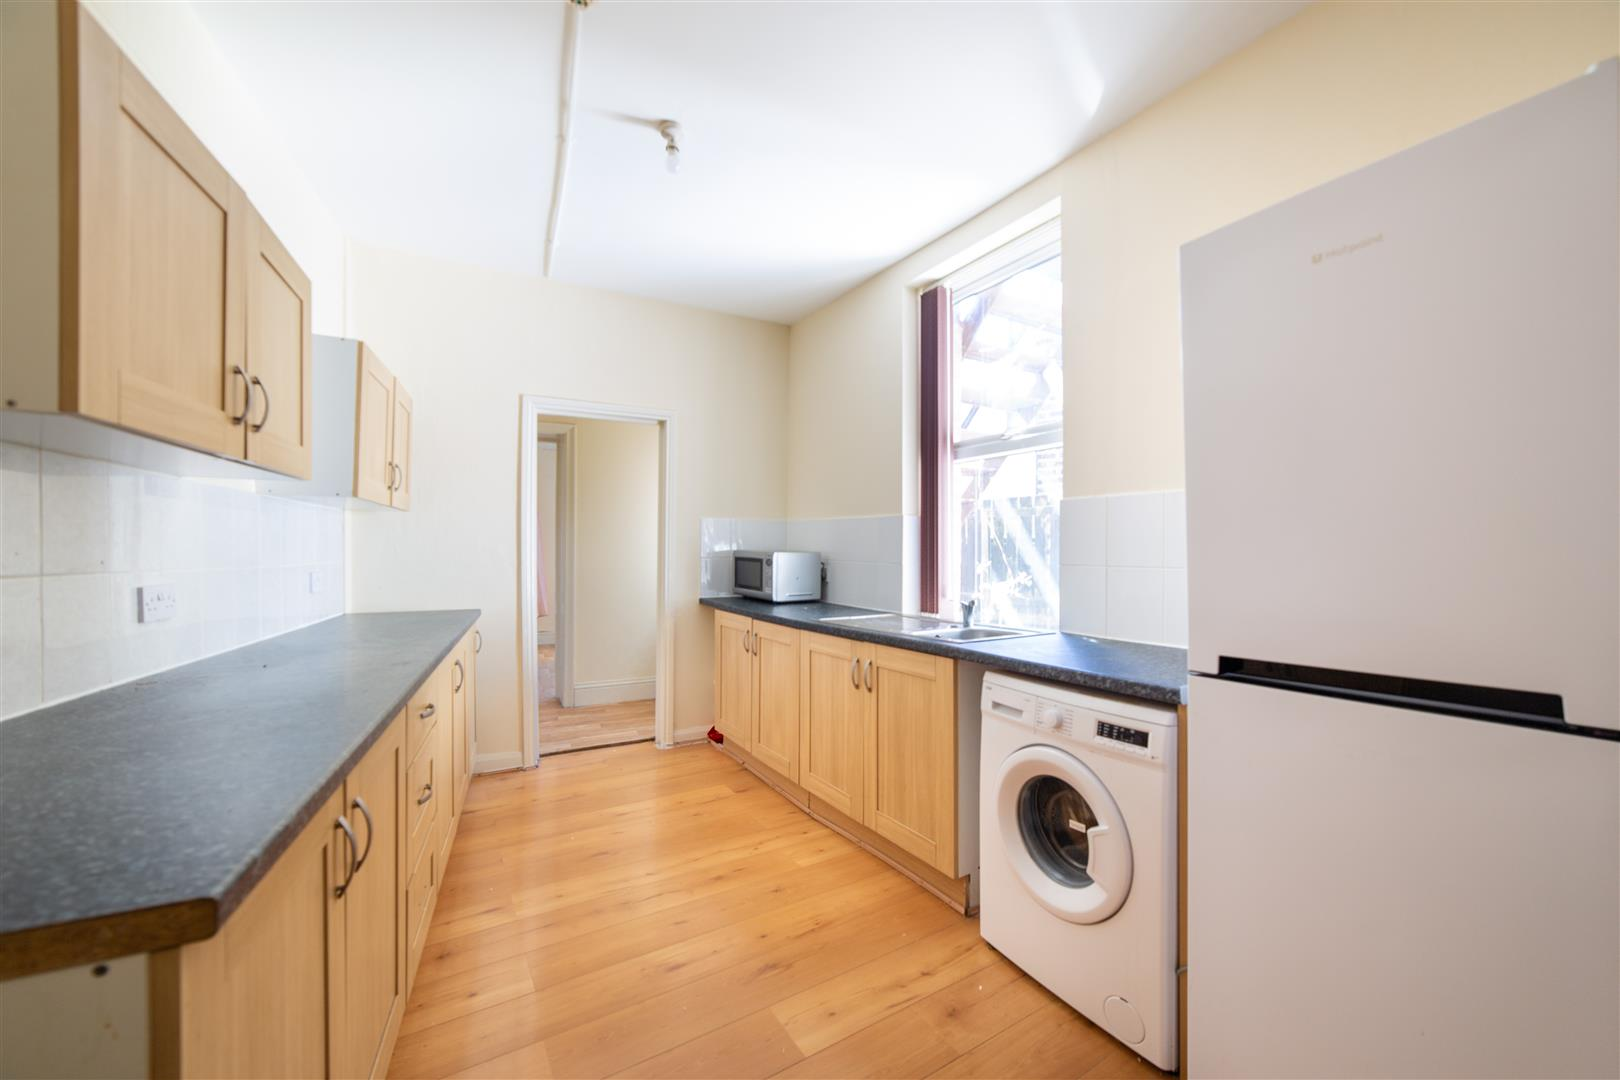 2 bed flat to rent in Newcastle Upon Tyne, NE6 5JT  - Property Image 1